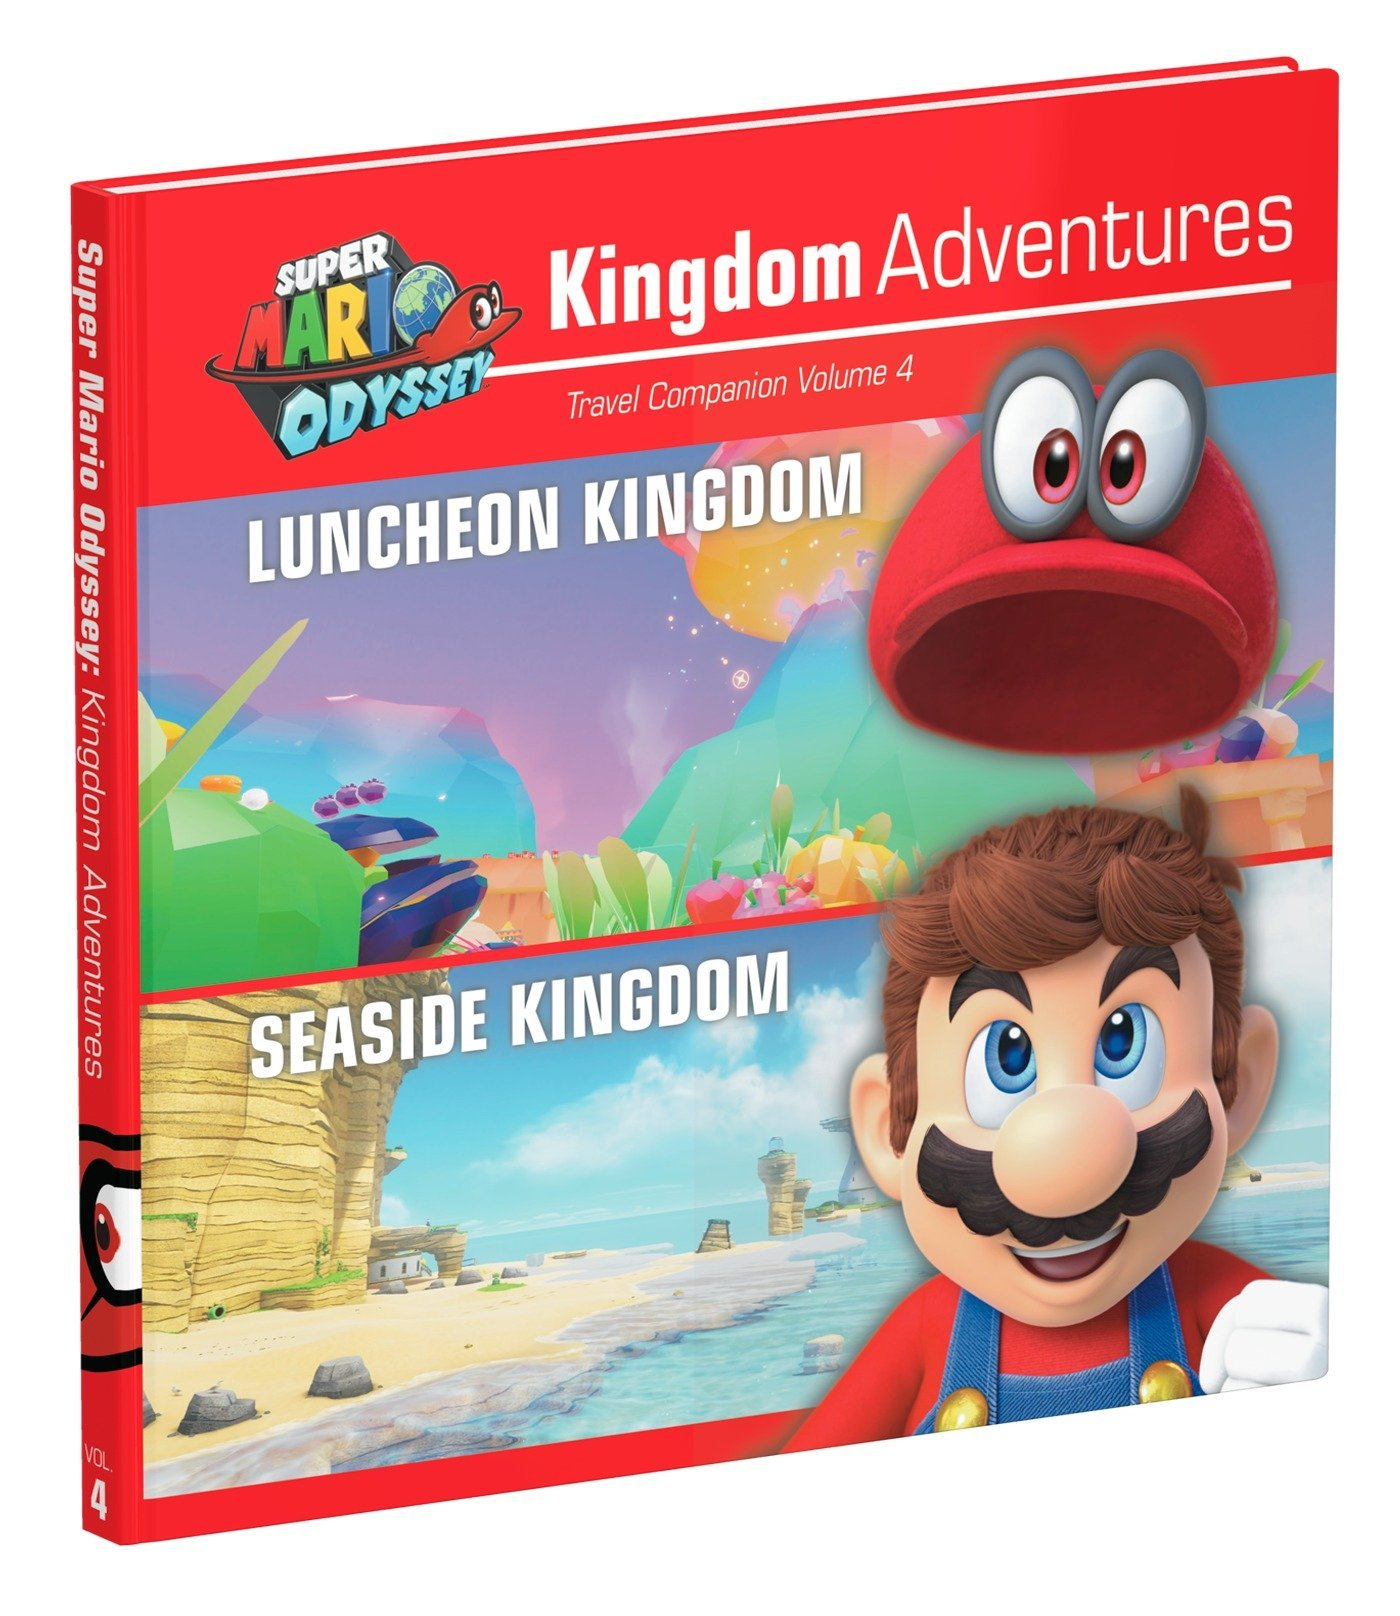 Super Mario Odyssey: Kingdom Adventures Vol 4 Idioma Inglés: Amazon.es: Prima Games: Libros en idiomas extranjeros